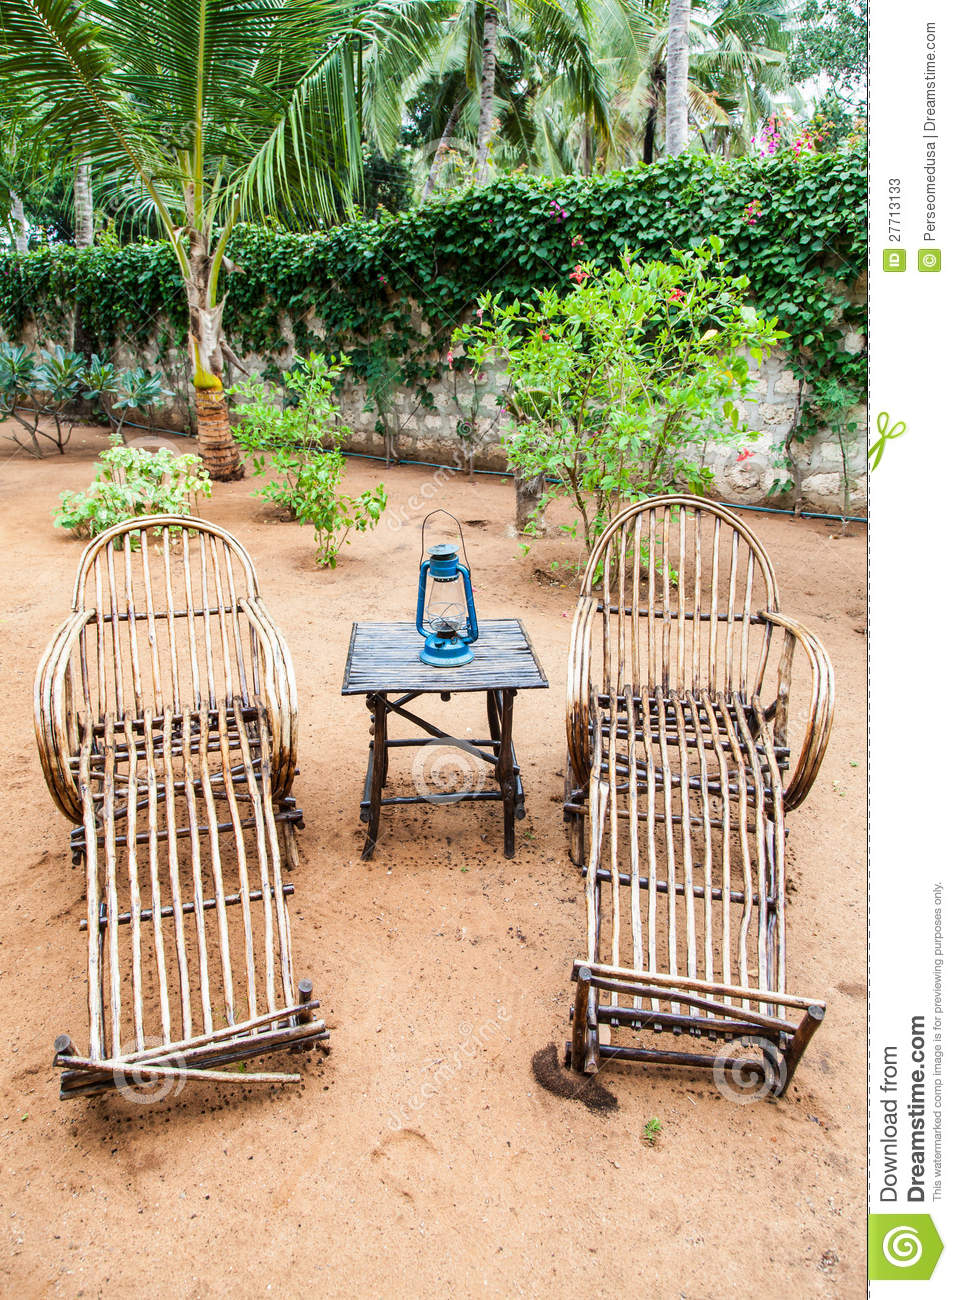 Garden furniture stock photos image 27713133 for Outdoor furniture kenya